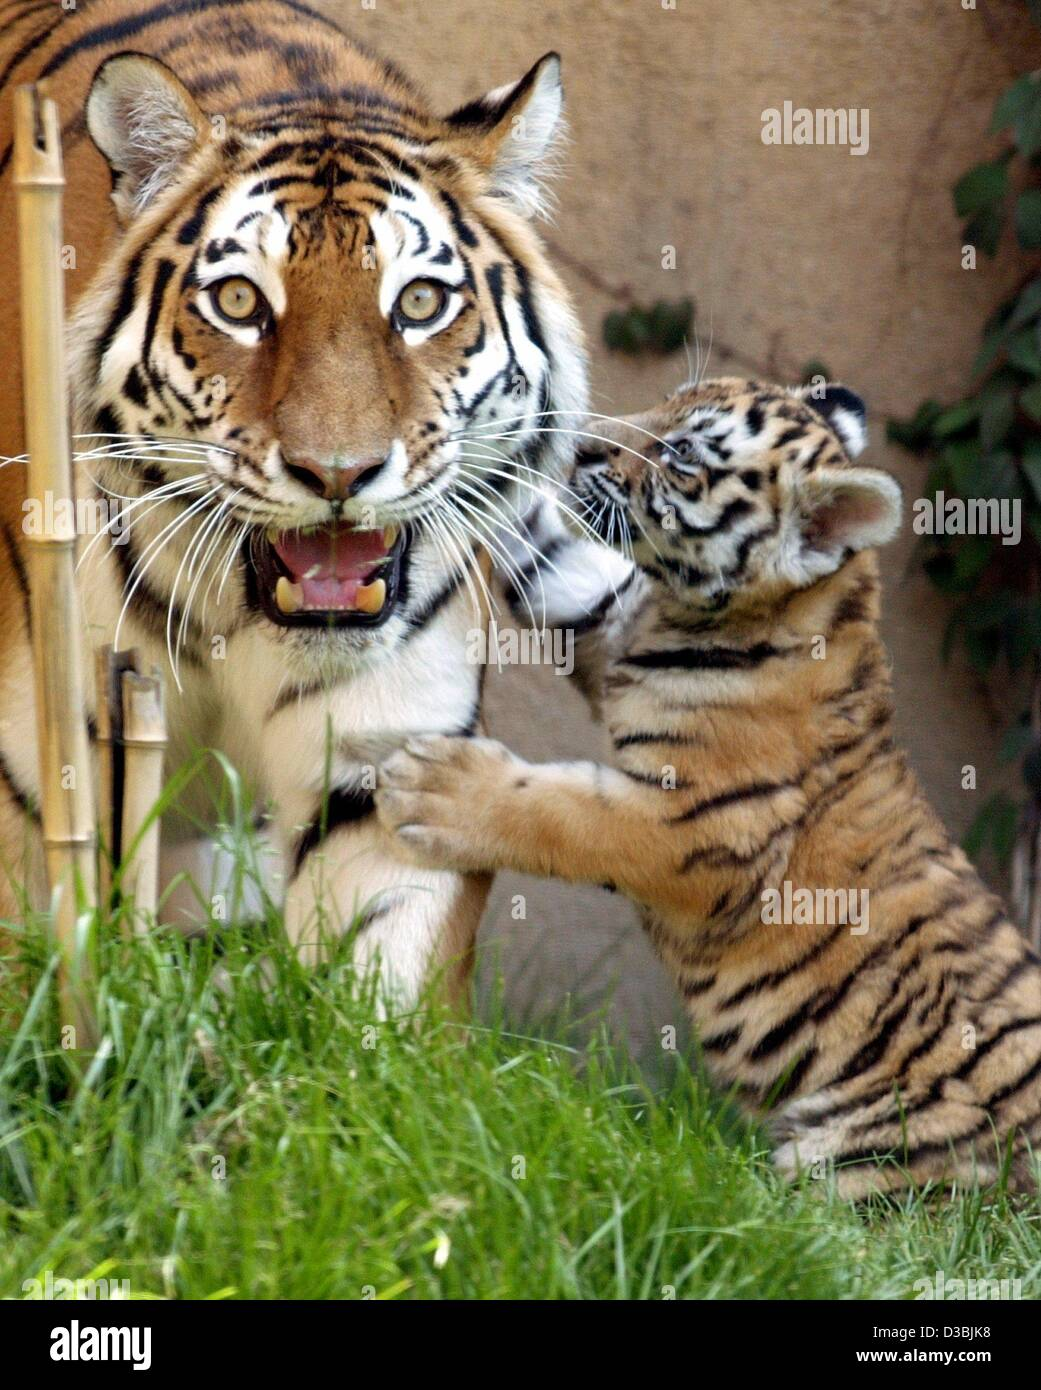 Baby Tigers High Resolution Stock Photography And Images Alamy